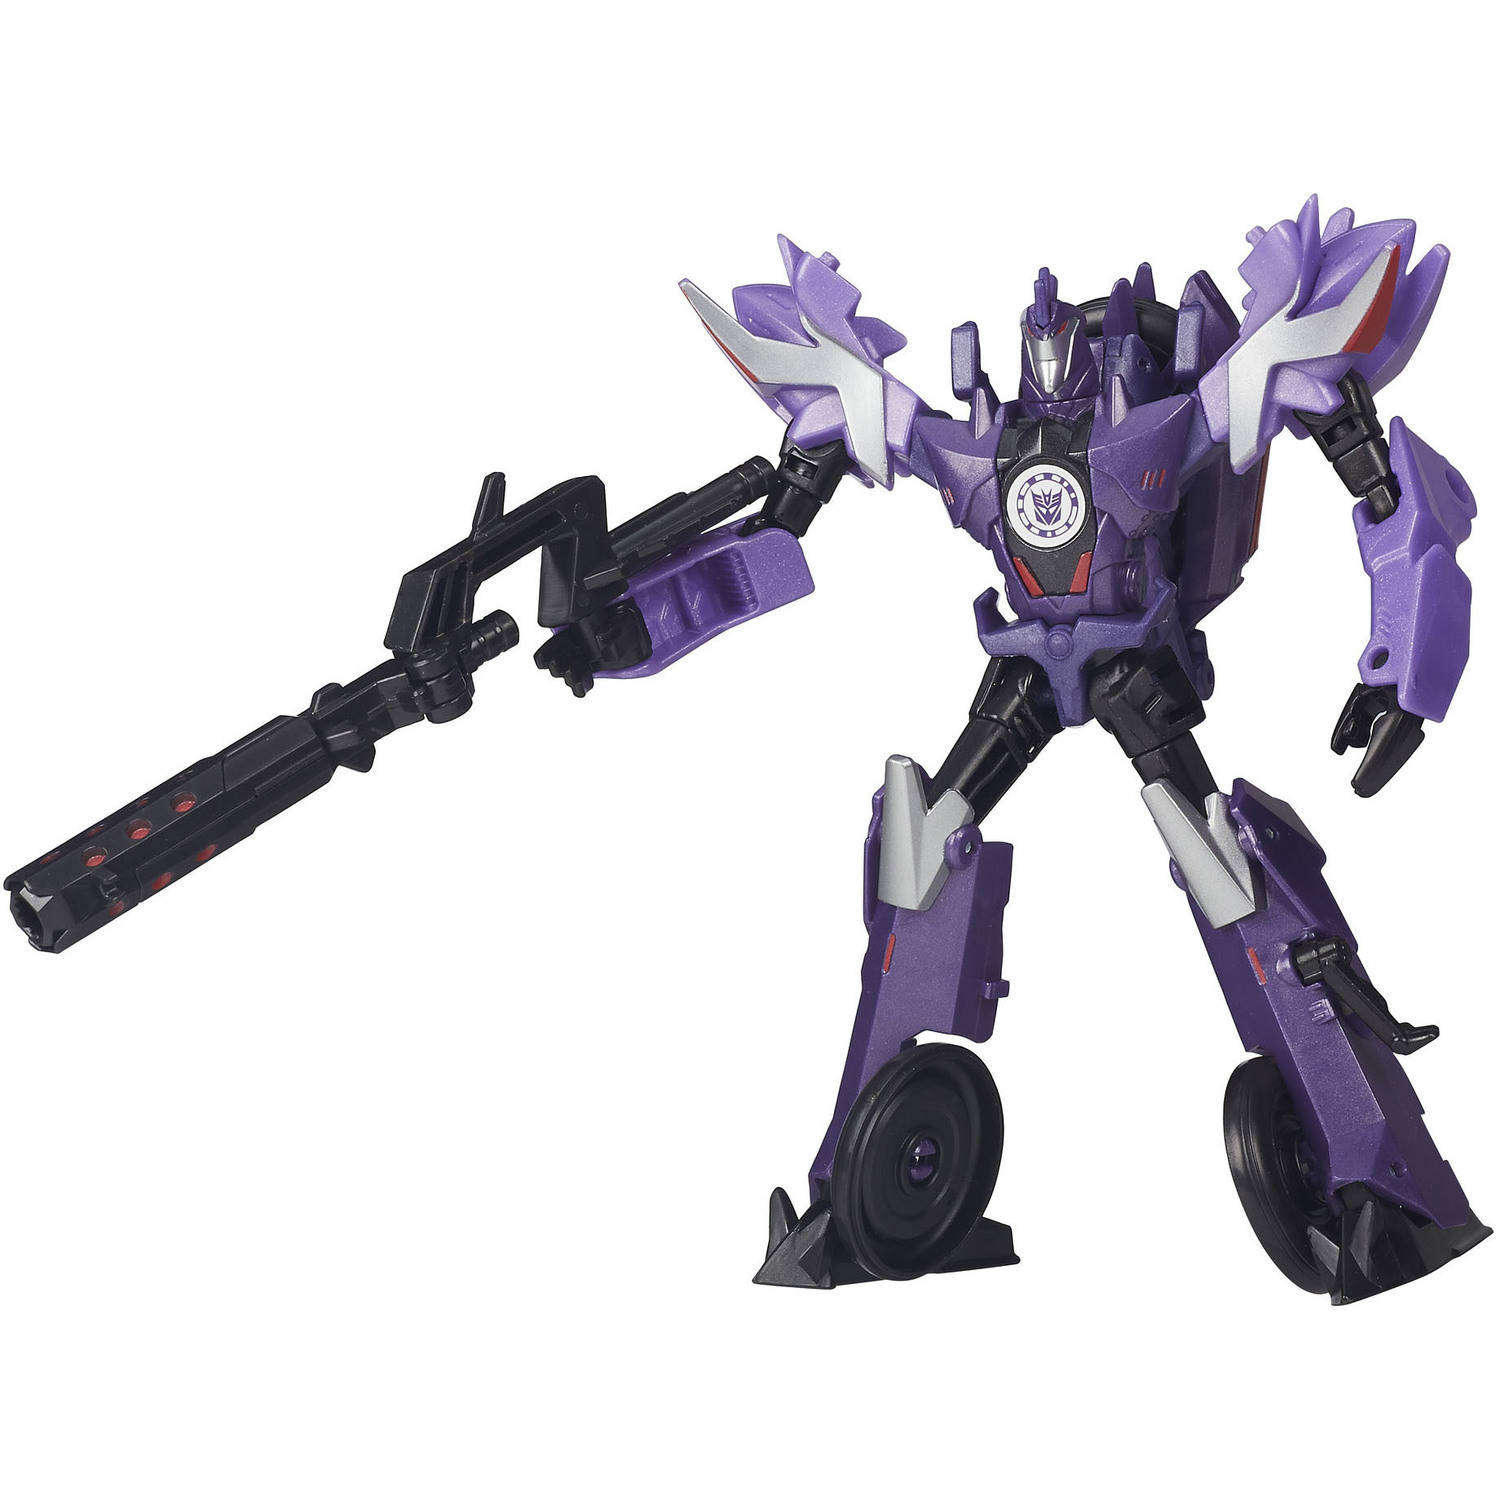 Transformers Robots in Disguise Warrior Class Decepticon Fracture Figure by